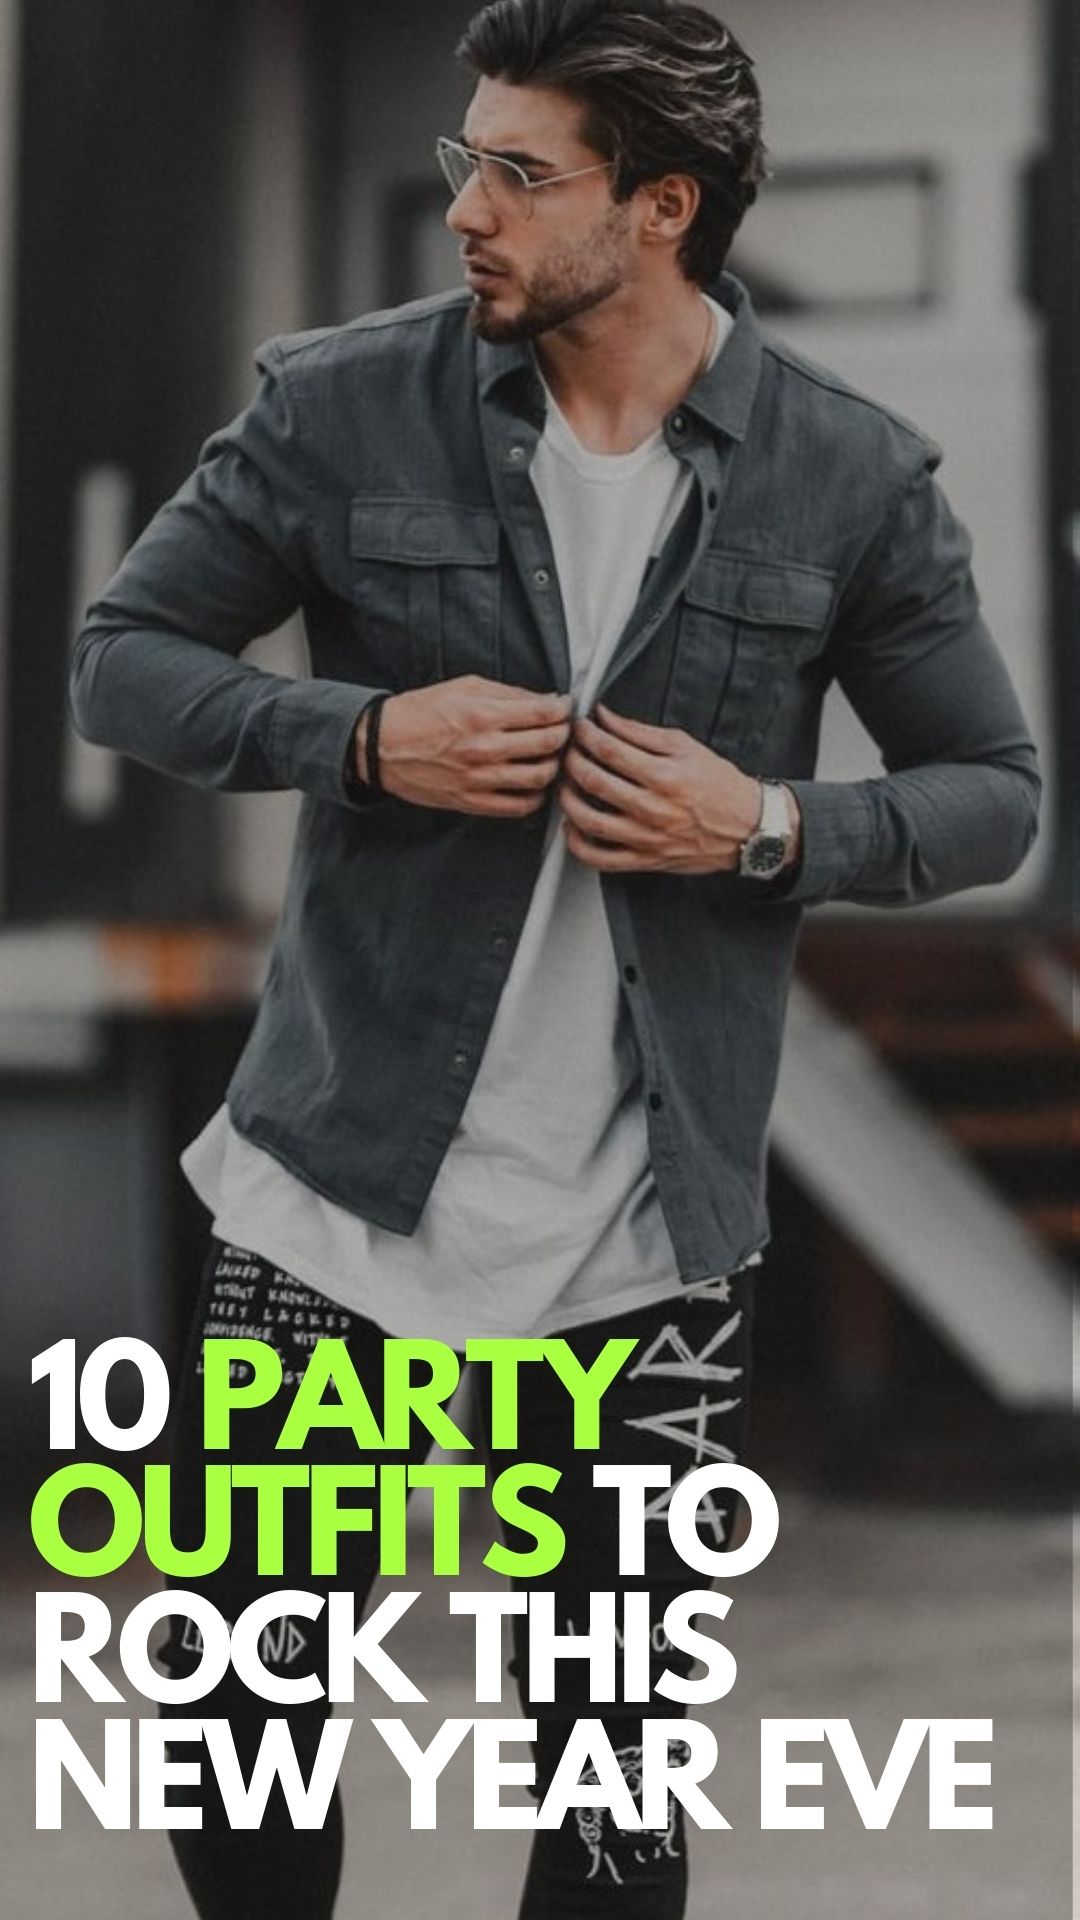 10 Party Outfits to Rock This New Year Eve